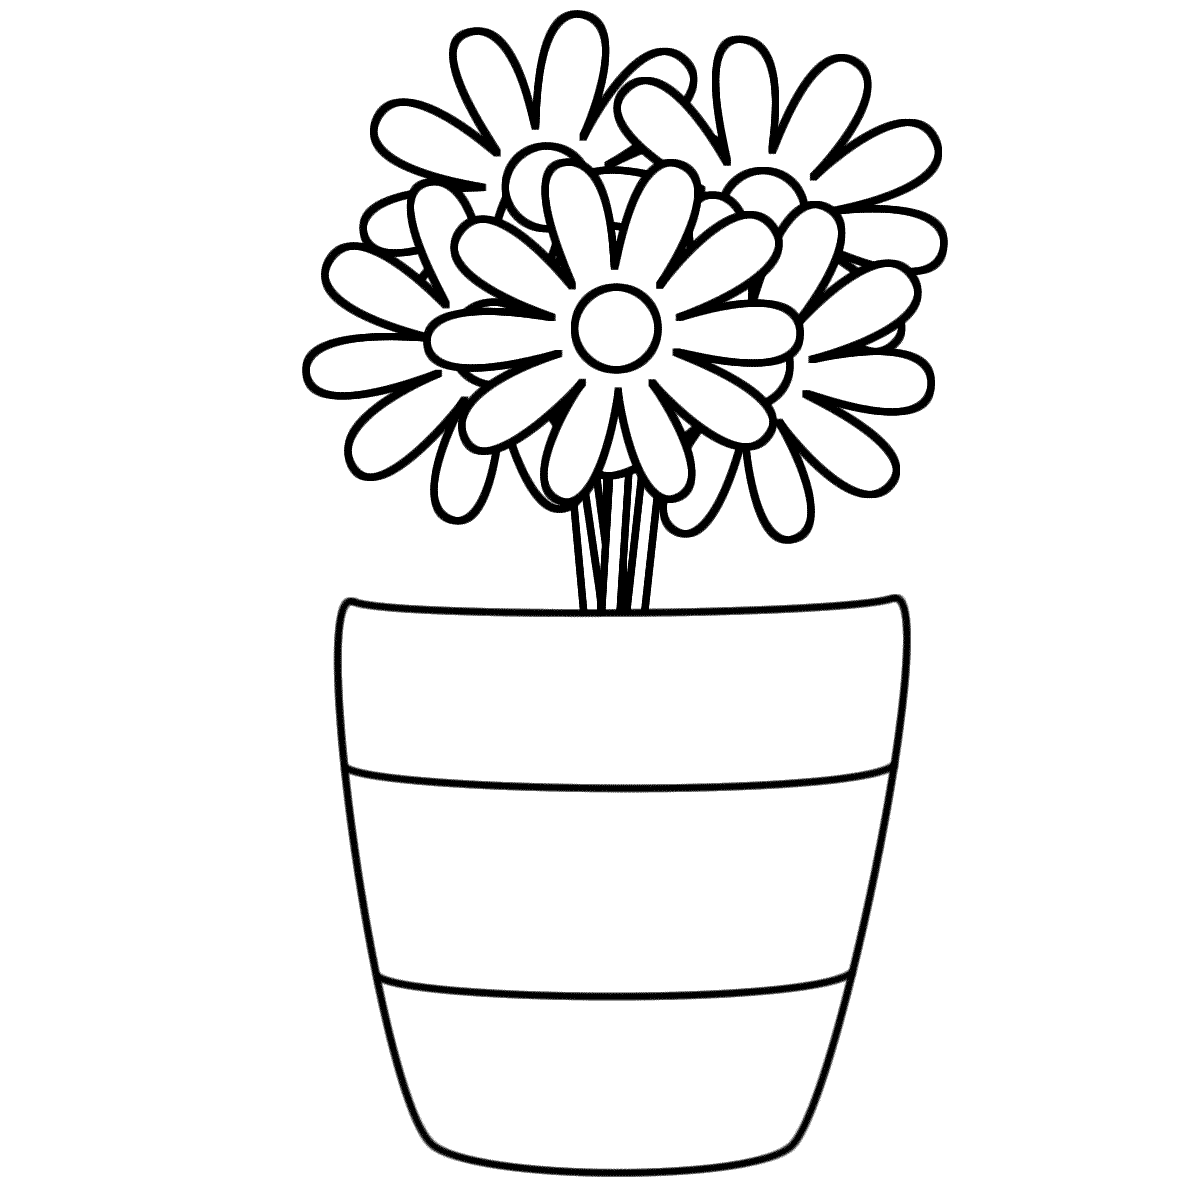 Flowers In A Vase With Stripes  Coloring Page Plants  Coloring